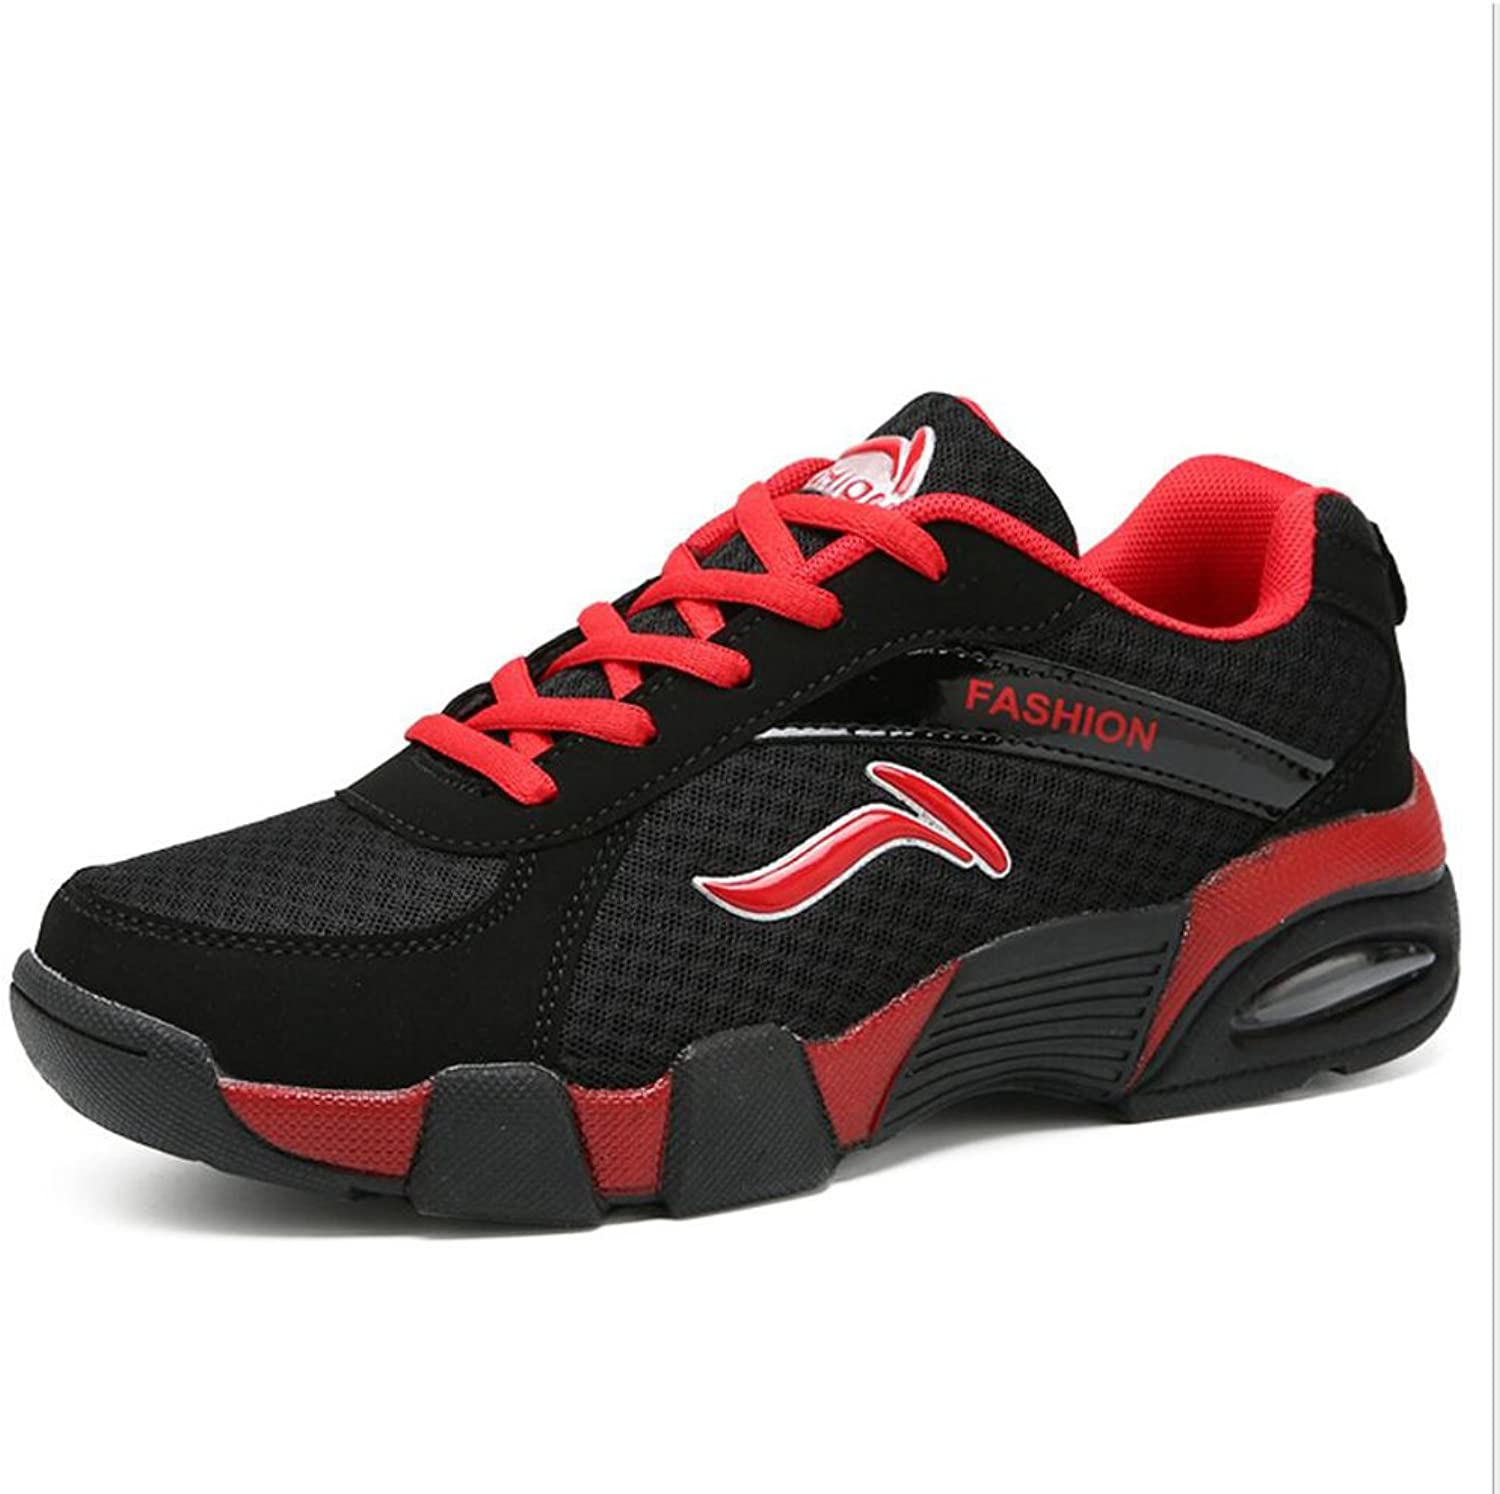 XUE Men's shoes Mesh Spring Fall Low-Top Sneakers Comfort Light Soles Athletic shoes Outdoor Casua Running shoes Lace-up shoes Comfort Walking shoes Hiking shoes Casual Travel (color   C, Size   41)